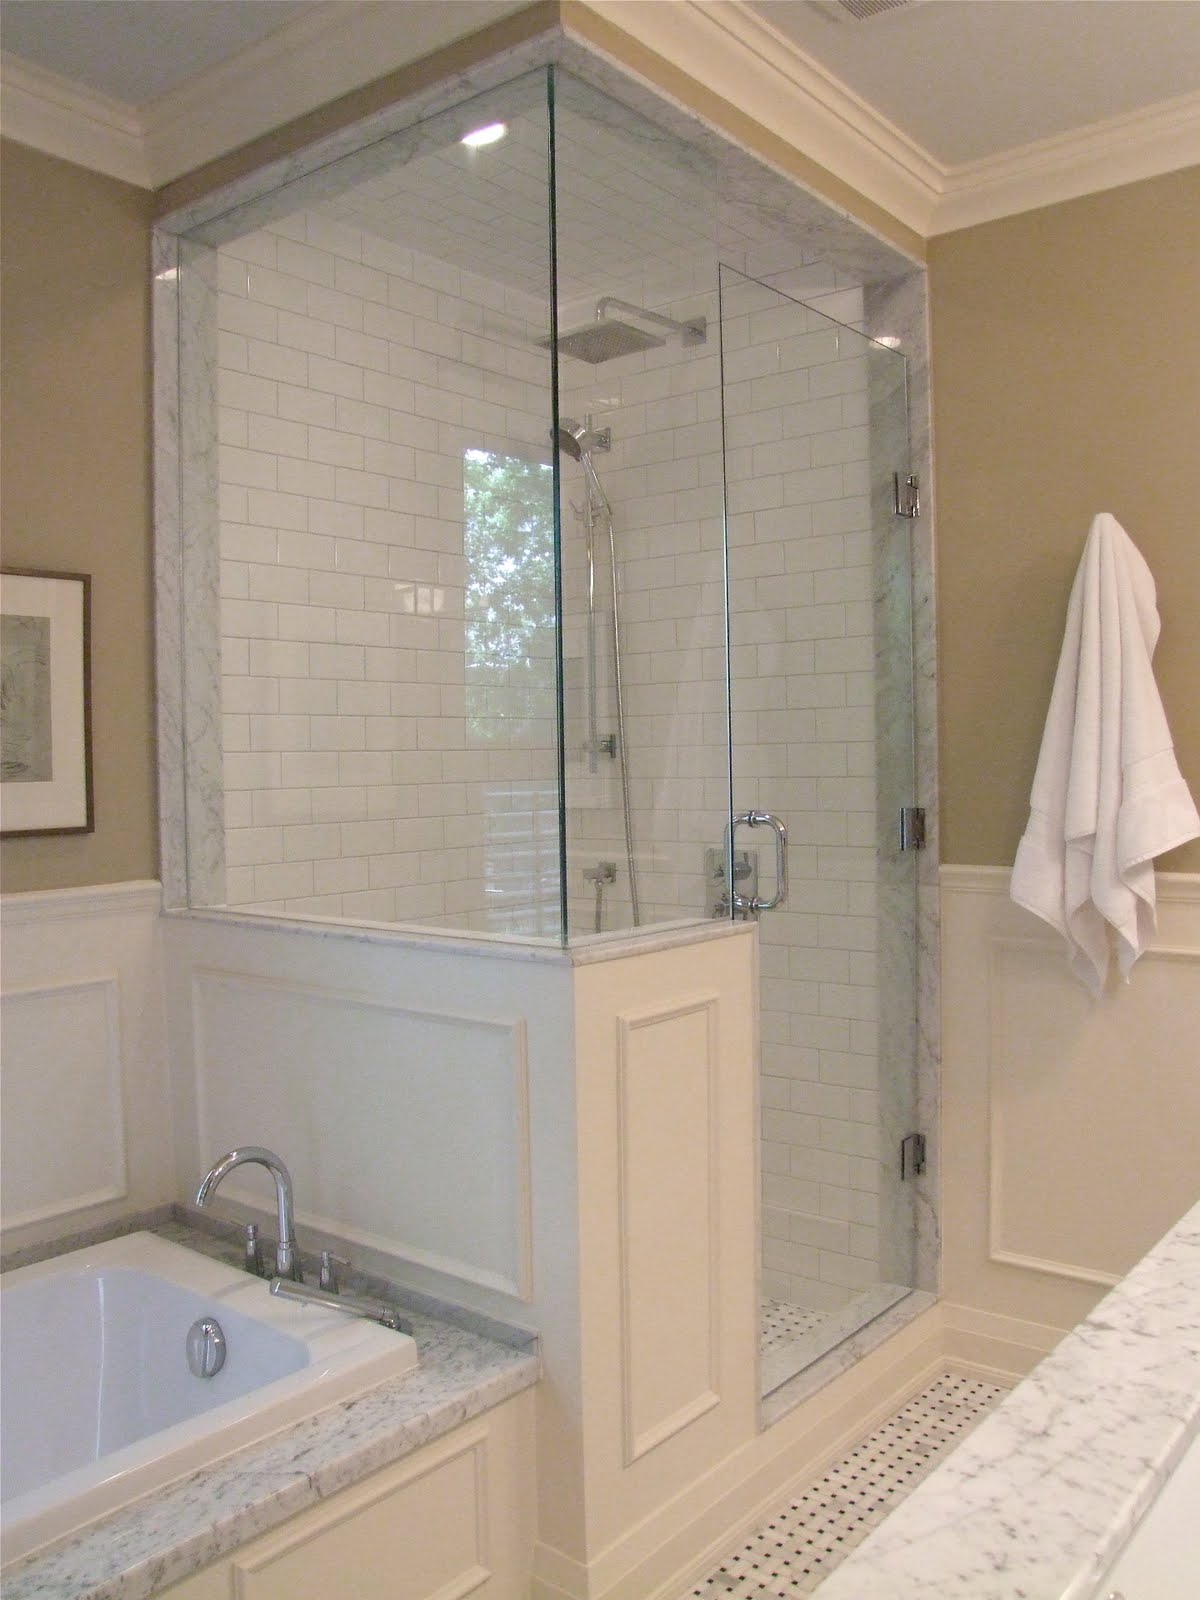 Creed after e design bathroom project part 2 - Bathroom shower ideas ...